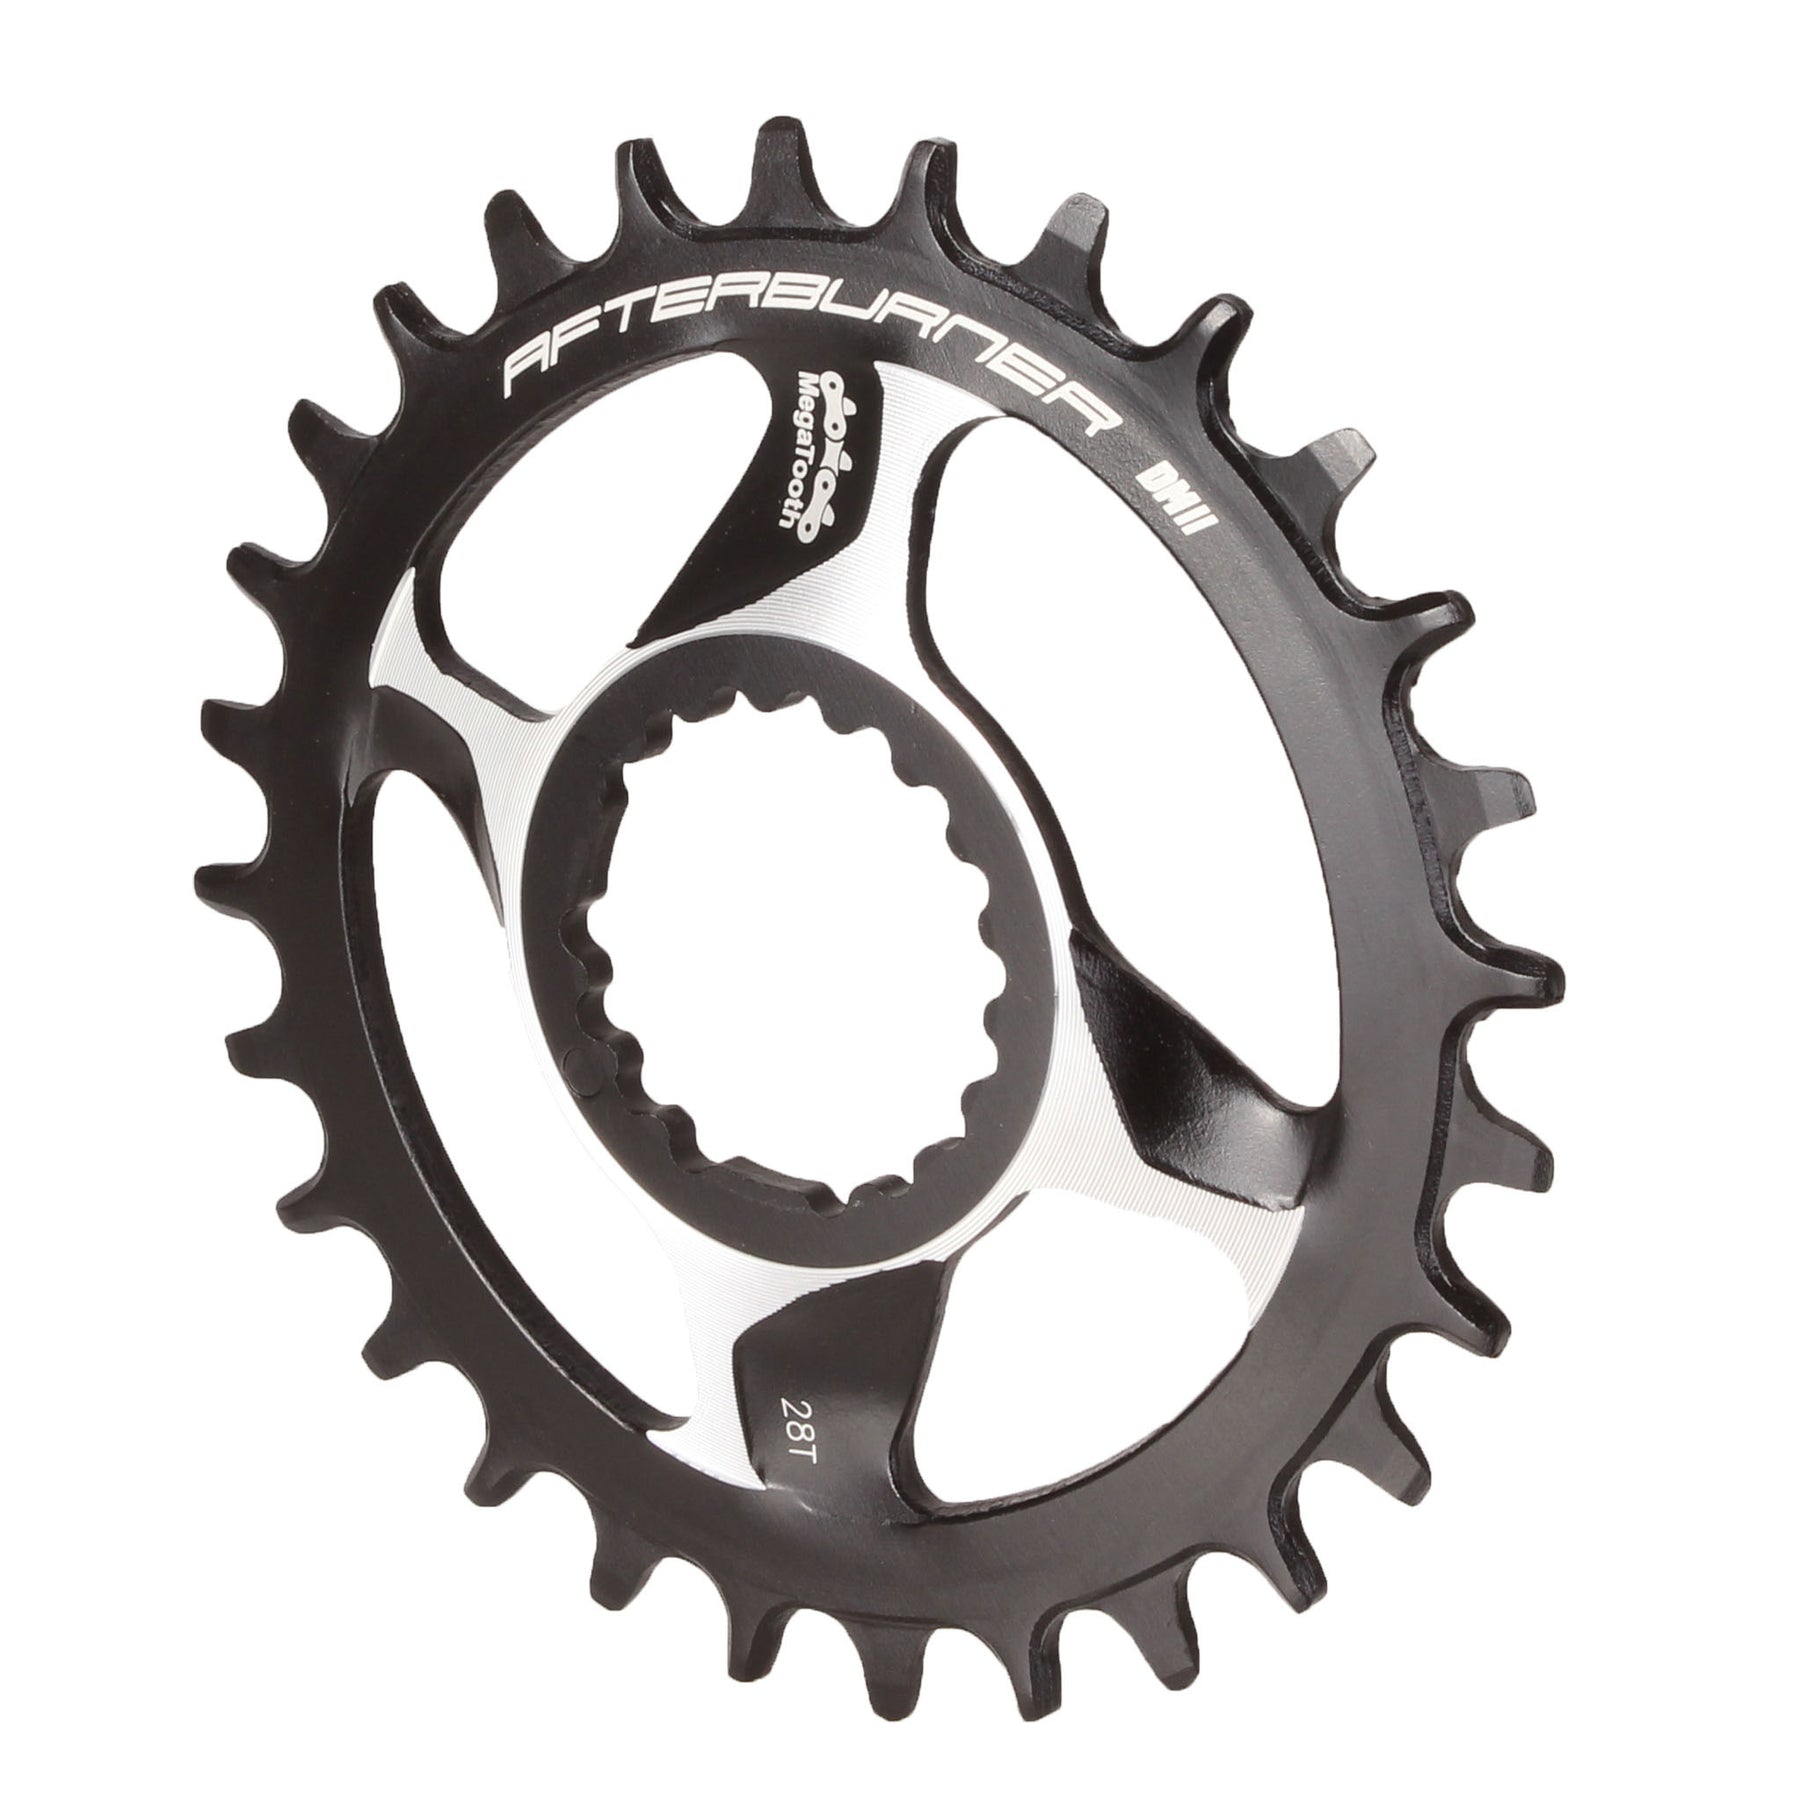 FSA Afterburner Chainring Direct Mount Narrow Wide Drop Stop Megatooth 11 Speed